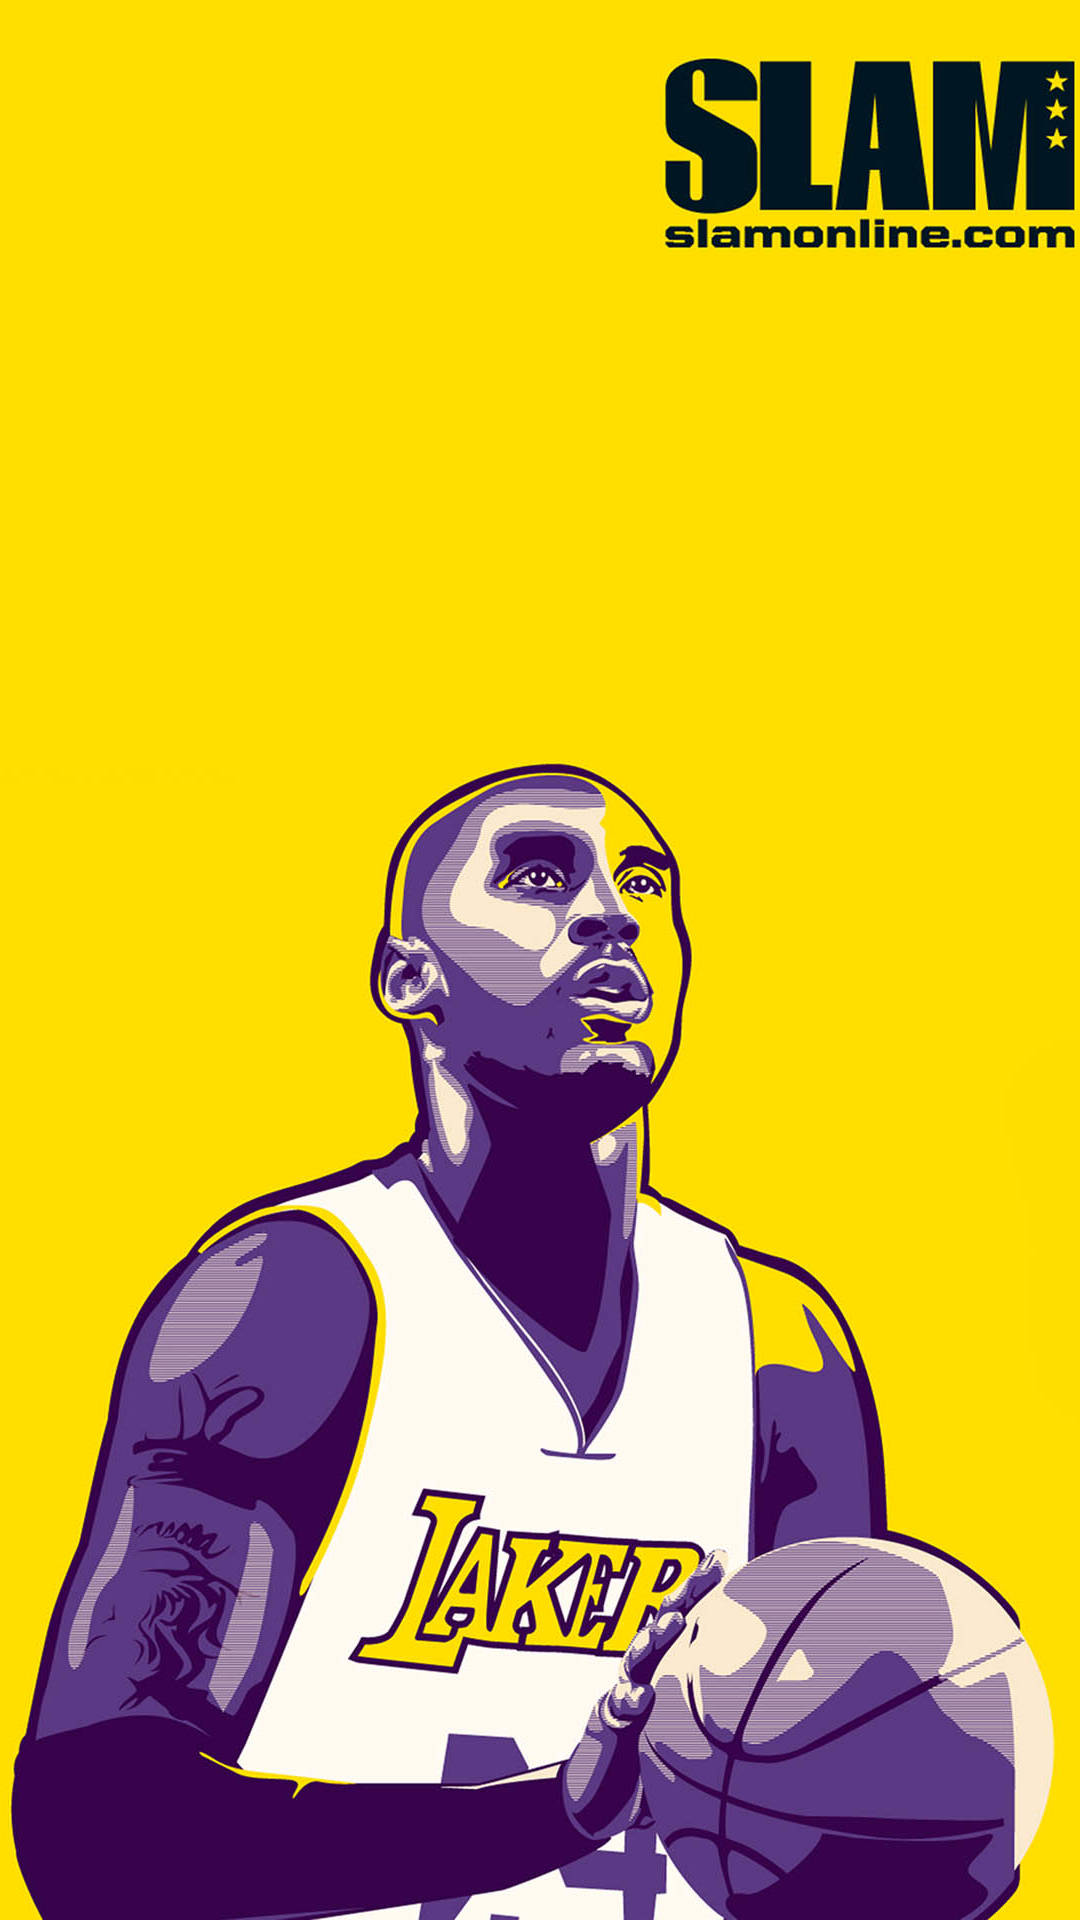 Kobe Bryant Wallpapers For Iphone 2281389 Hd Wallpaper